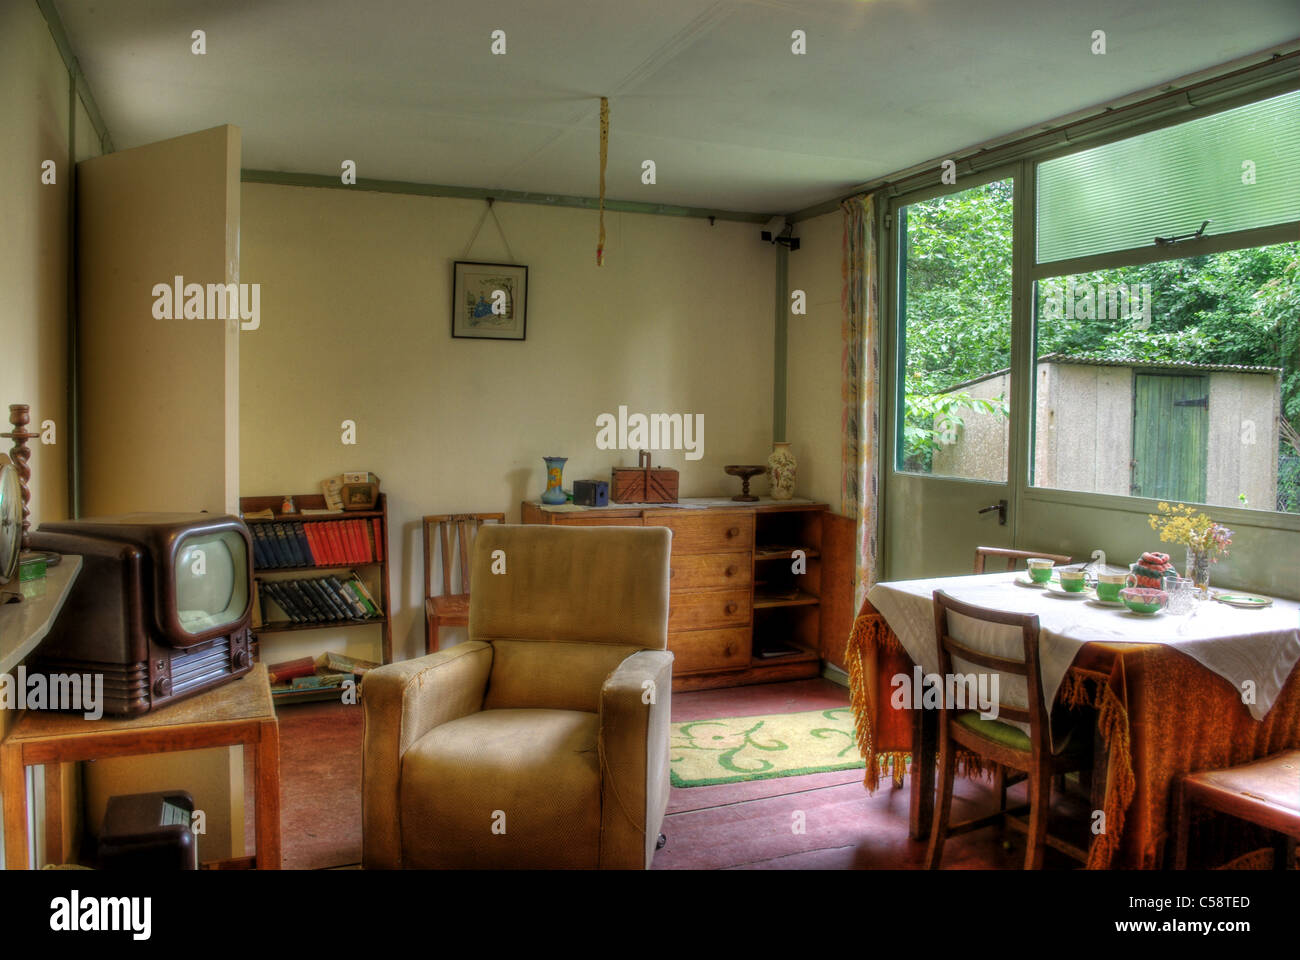 Interior of a 1940's prefab house at Avoncroft Museum of Historic Buildings. - Stock Image